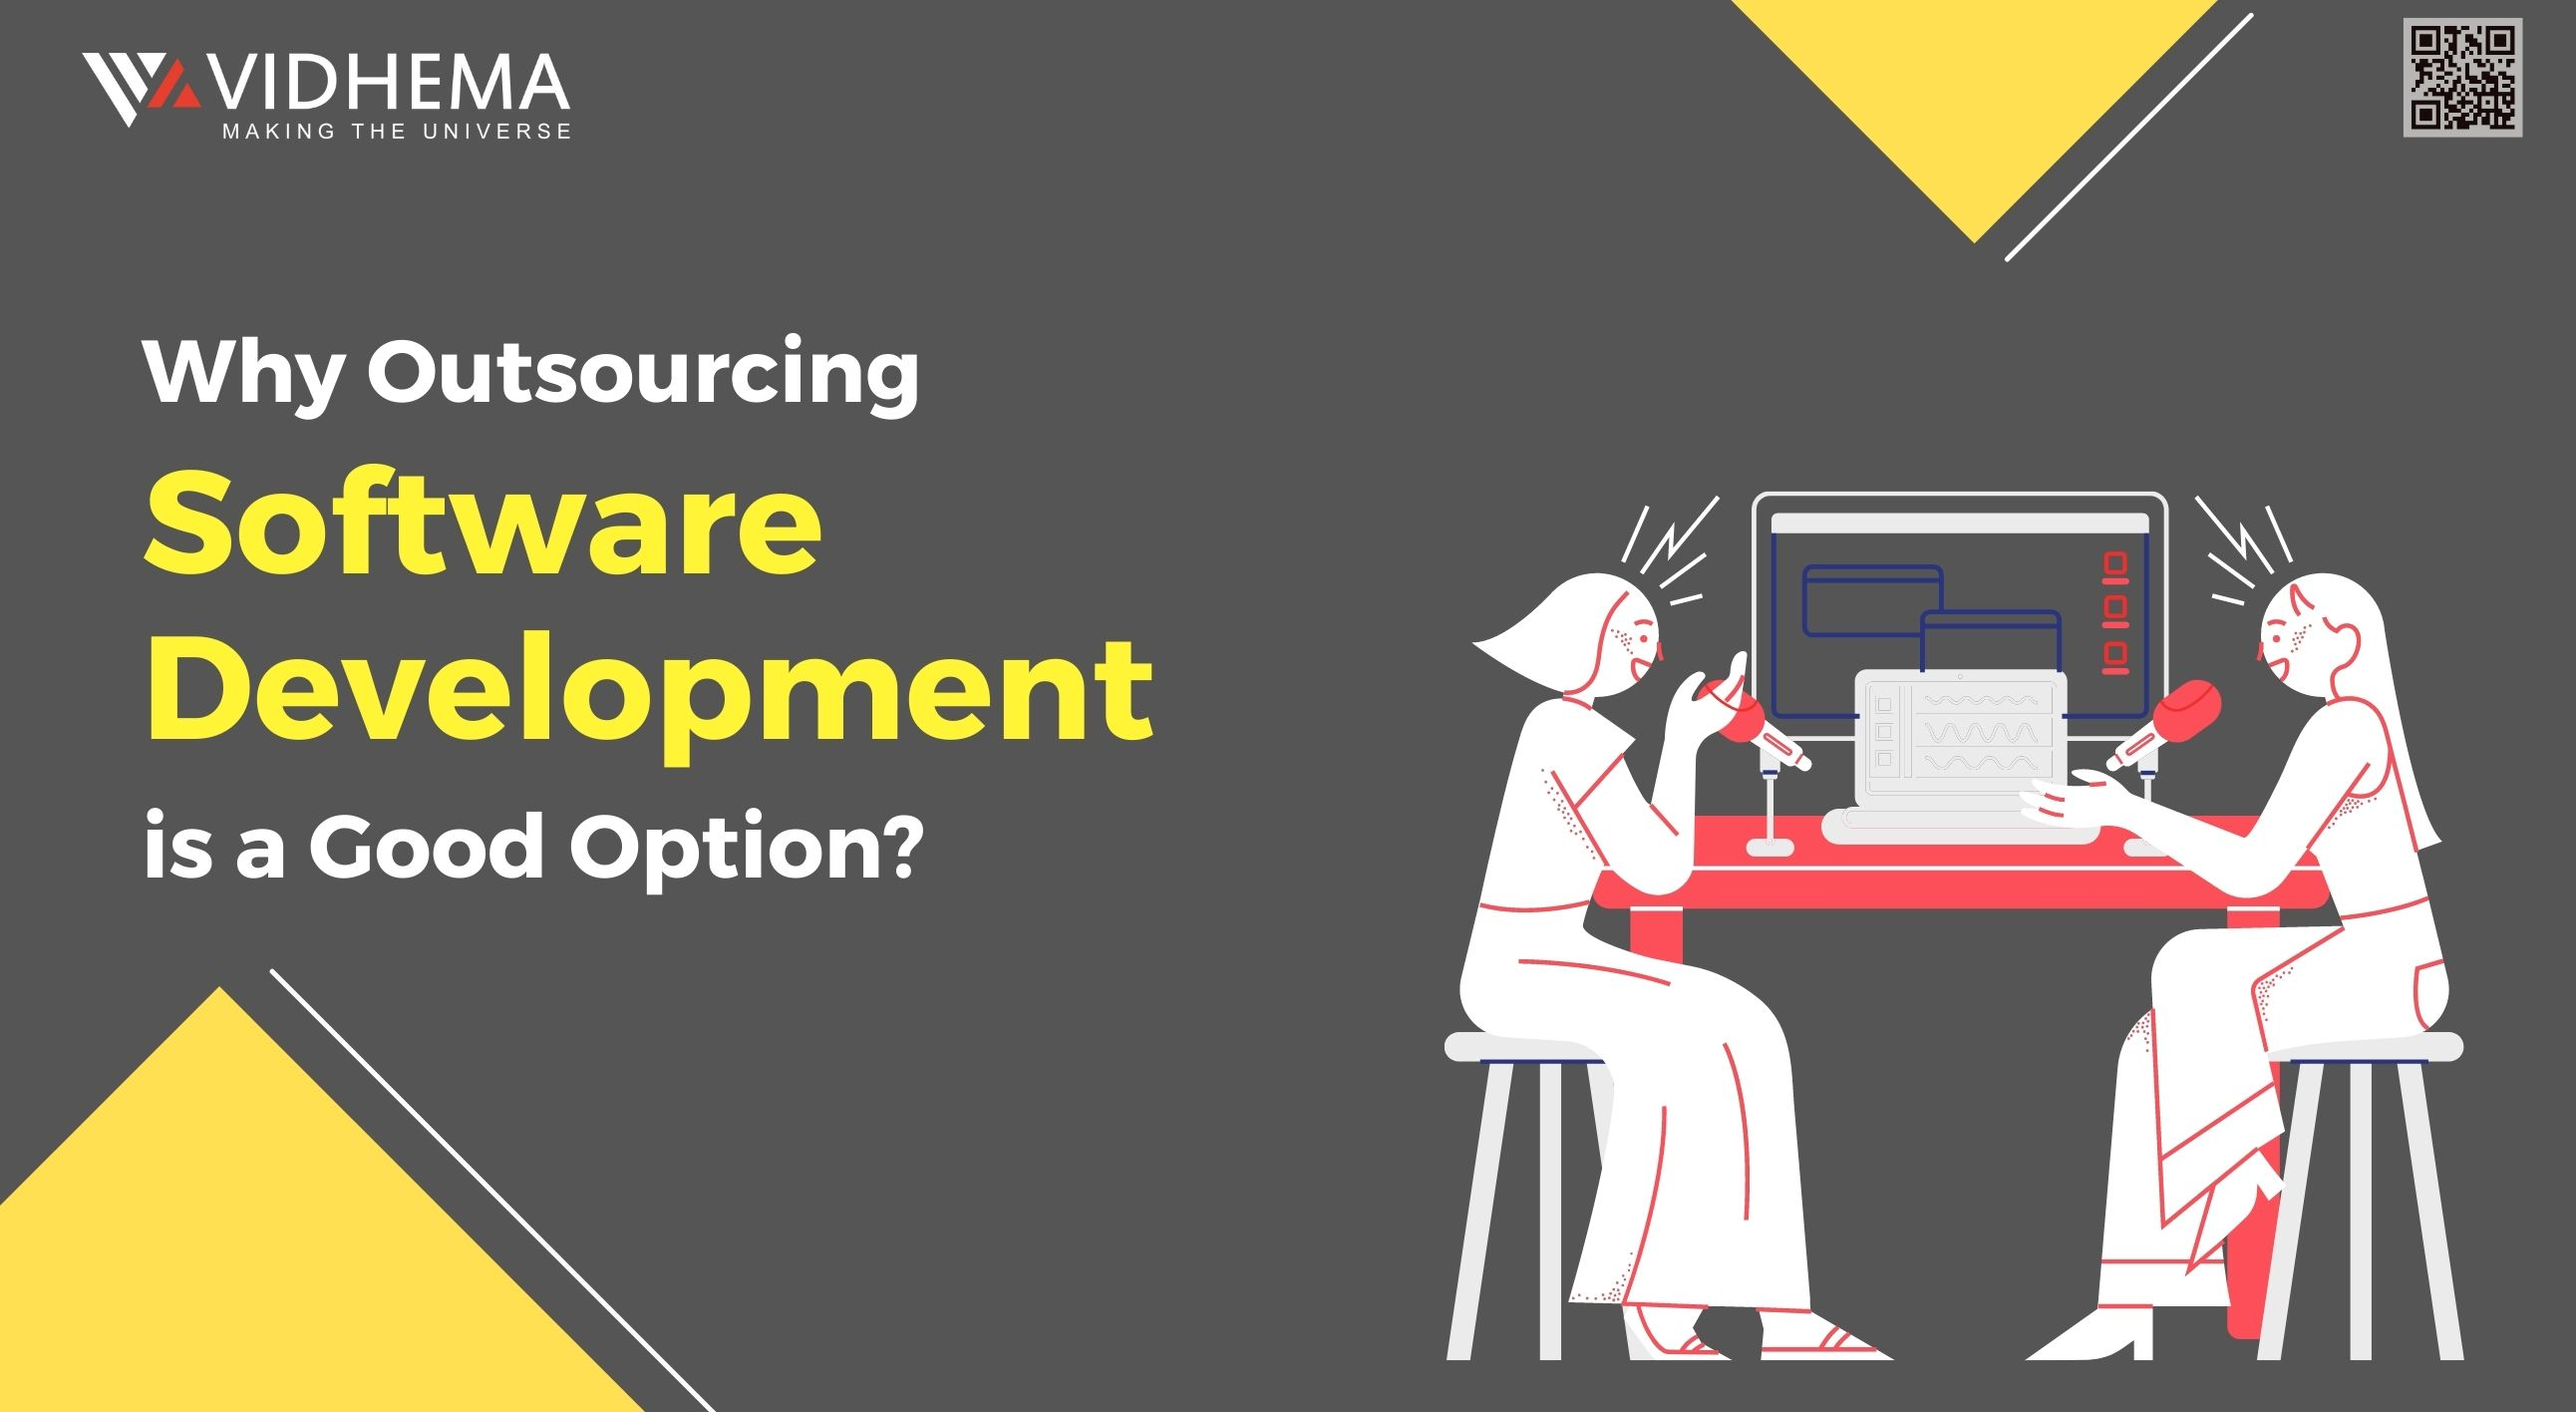 Why Outsourcing Software Development is a Good Option?